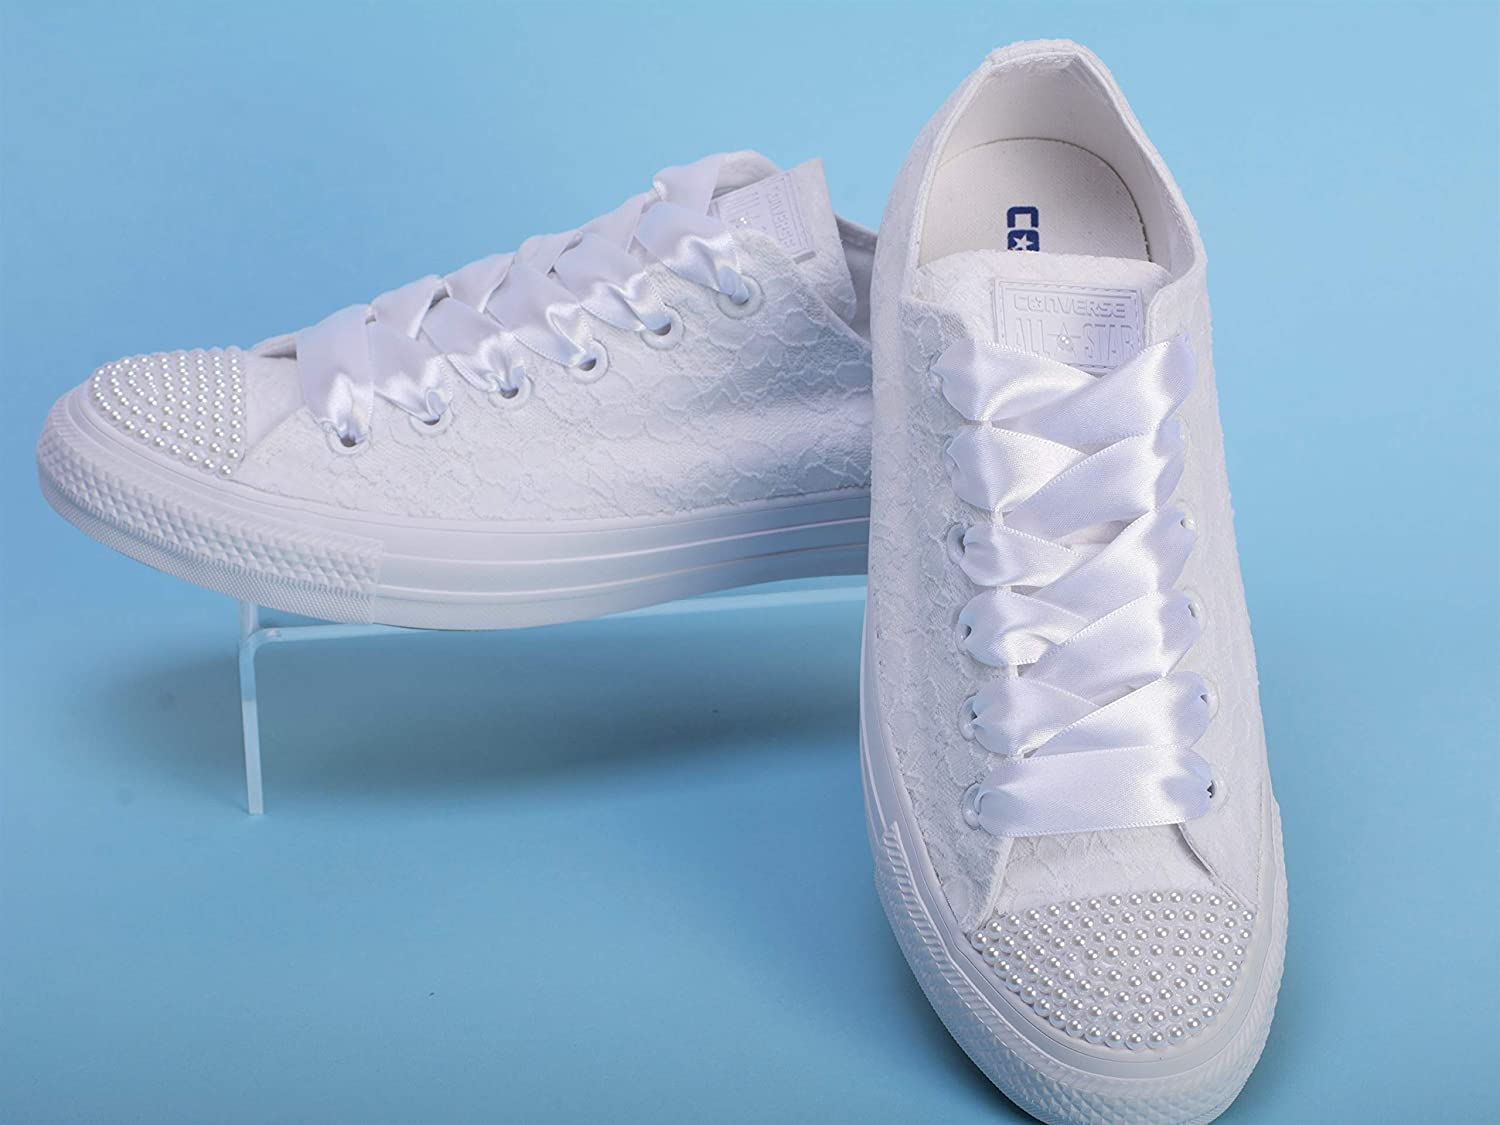 9838f6e61cd White Pearl Wedding Sneakers For Bride, Lace Bridal Trainers ...